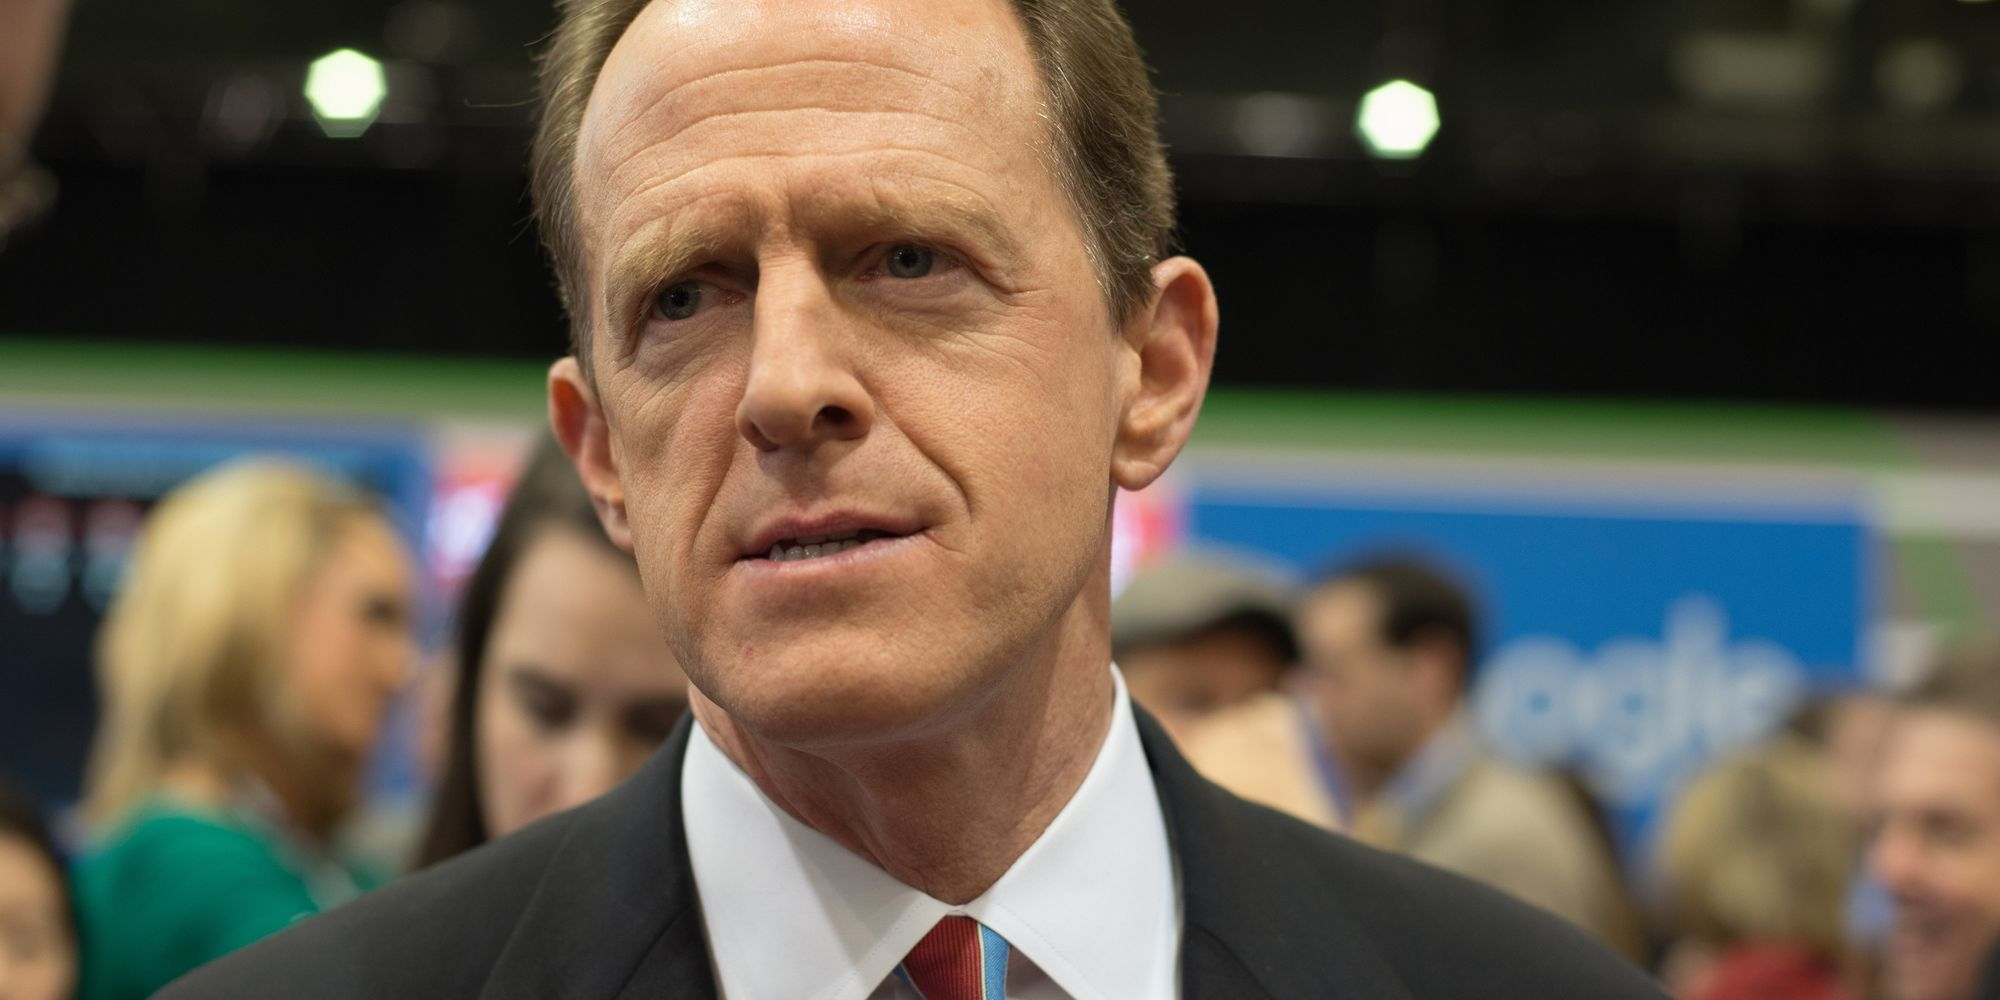 GOP Senator Downplays Link To For-Profit College With Bizarre Teachings About Women